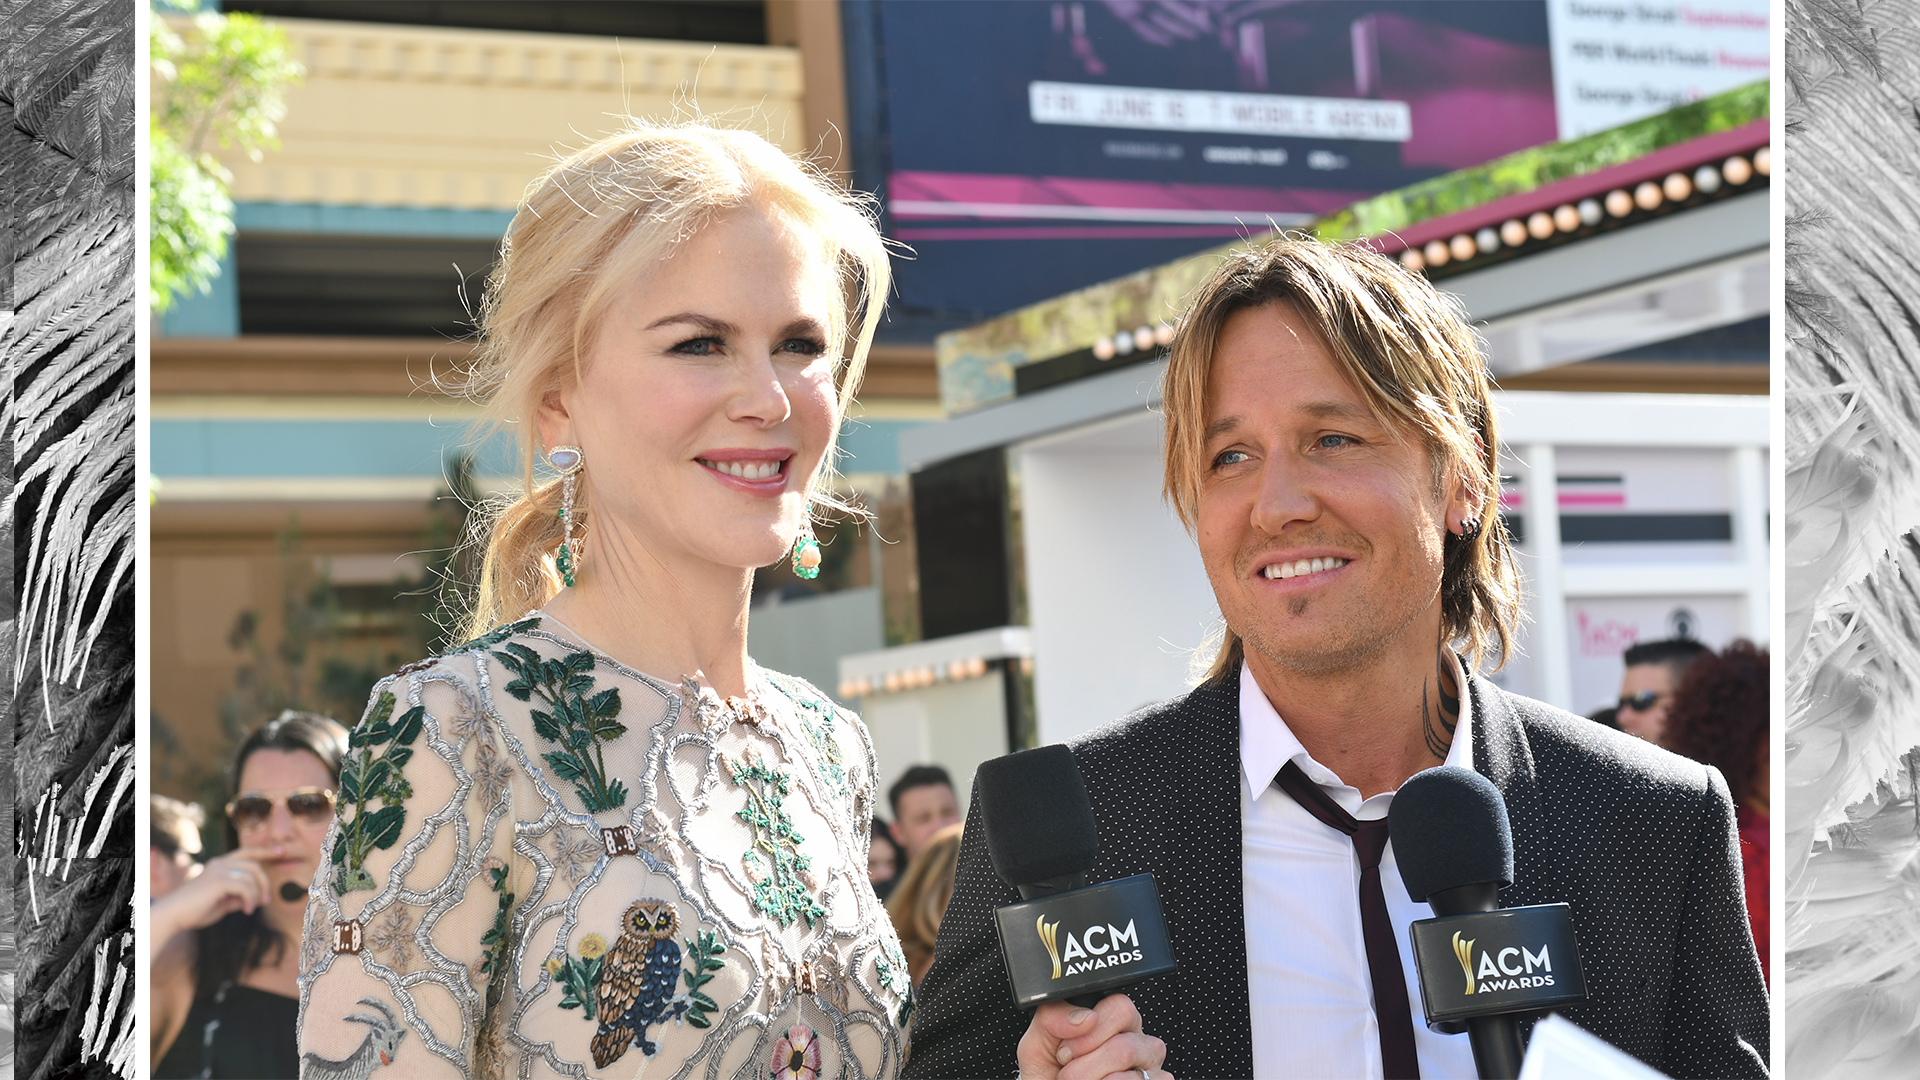 Aussie power couple Nicole Kidman and Keith Urban light up during a pre-show interview.